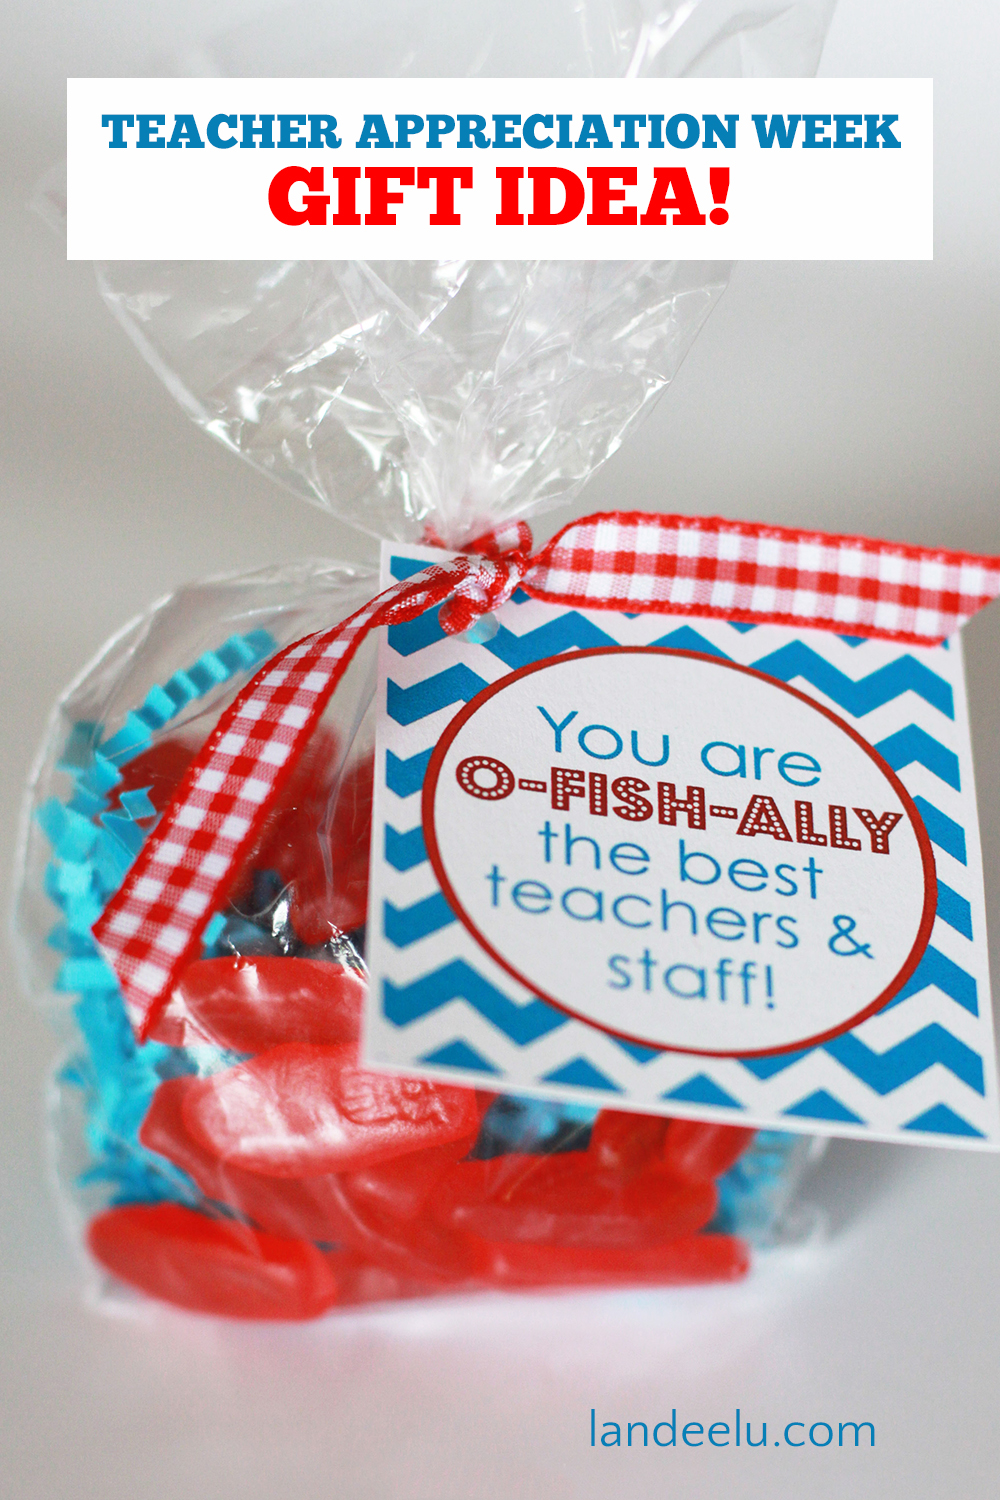 Fun Teacher Appreciation Week gift idea! You are O-FISH-ALLY the best teachers and staff!